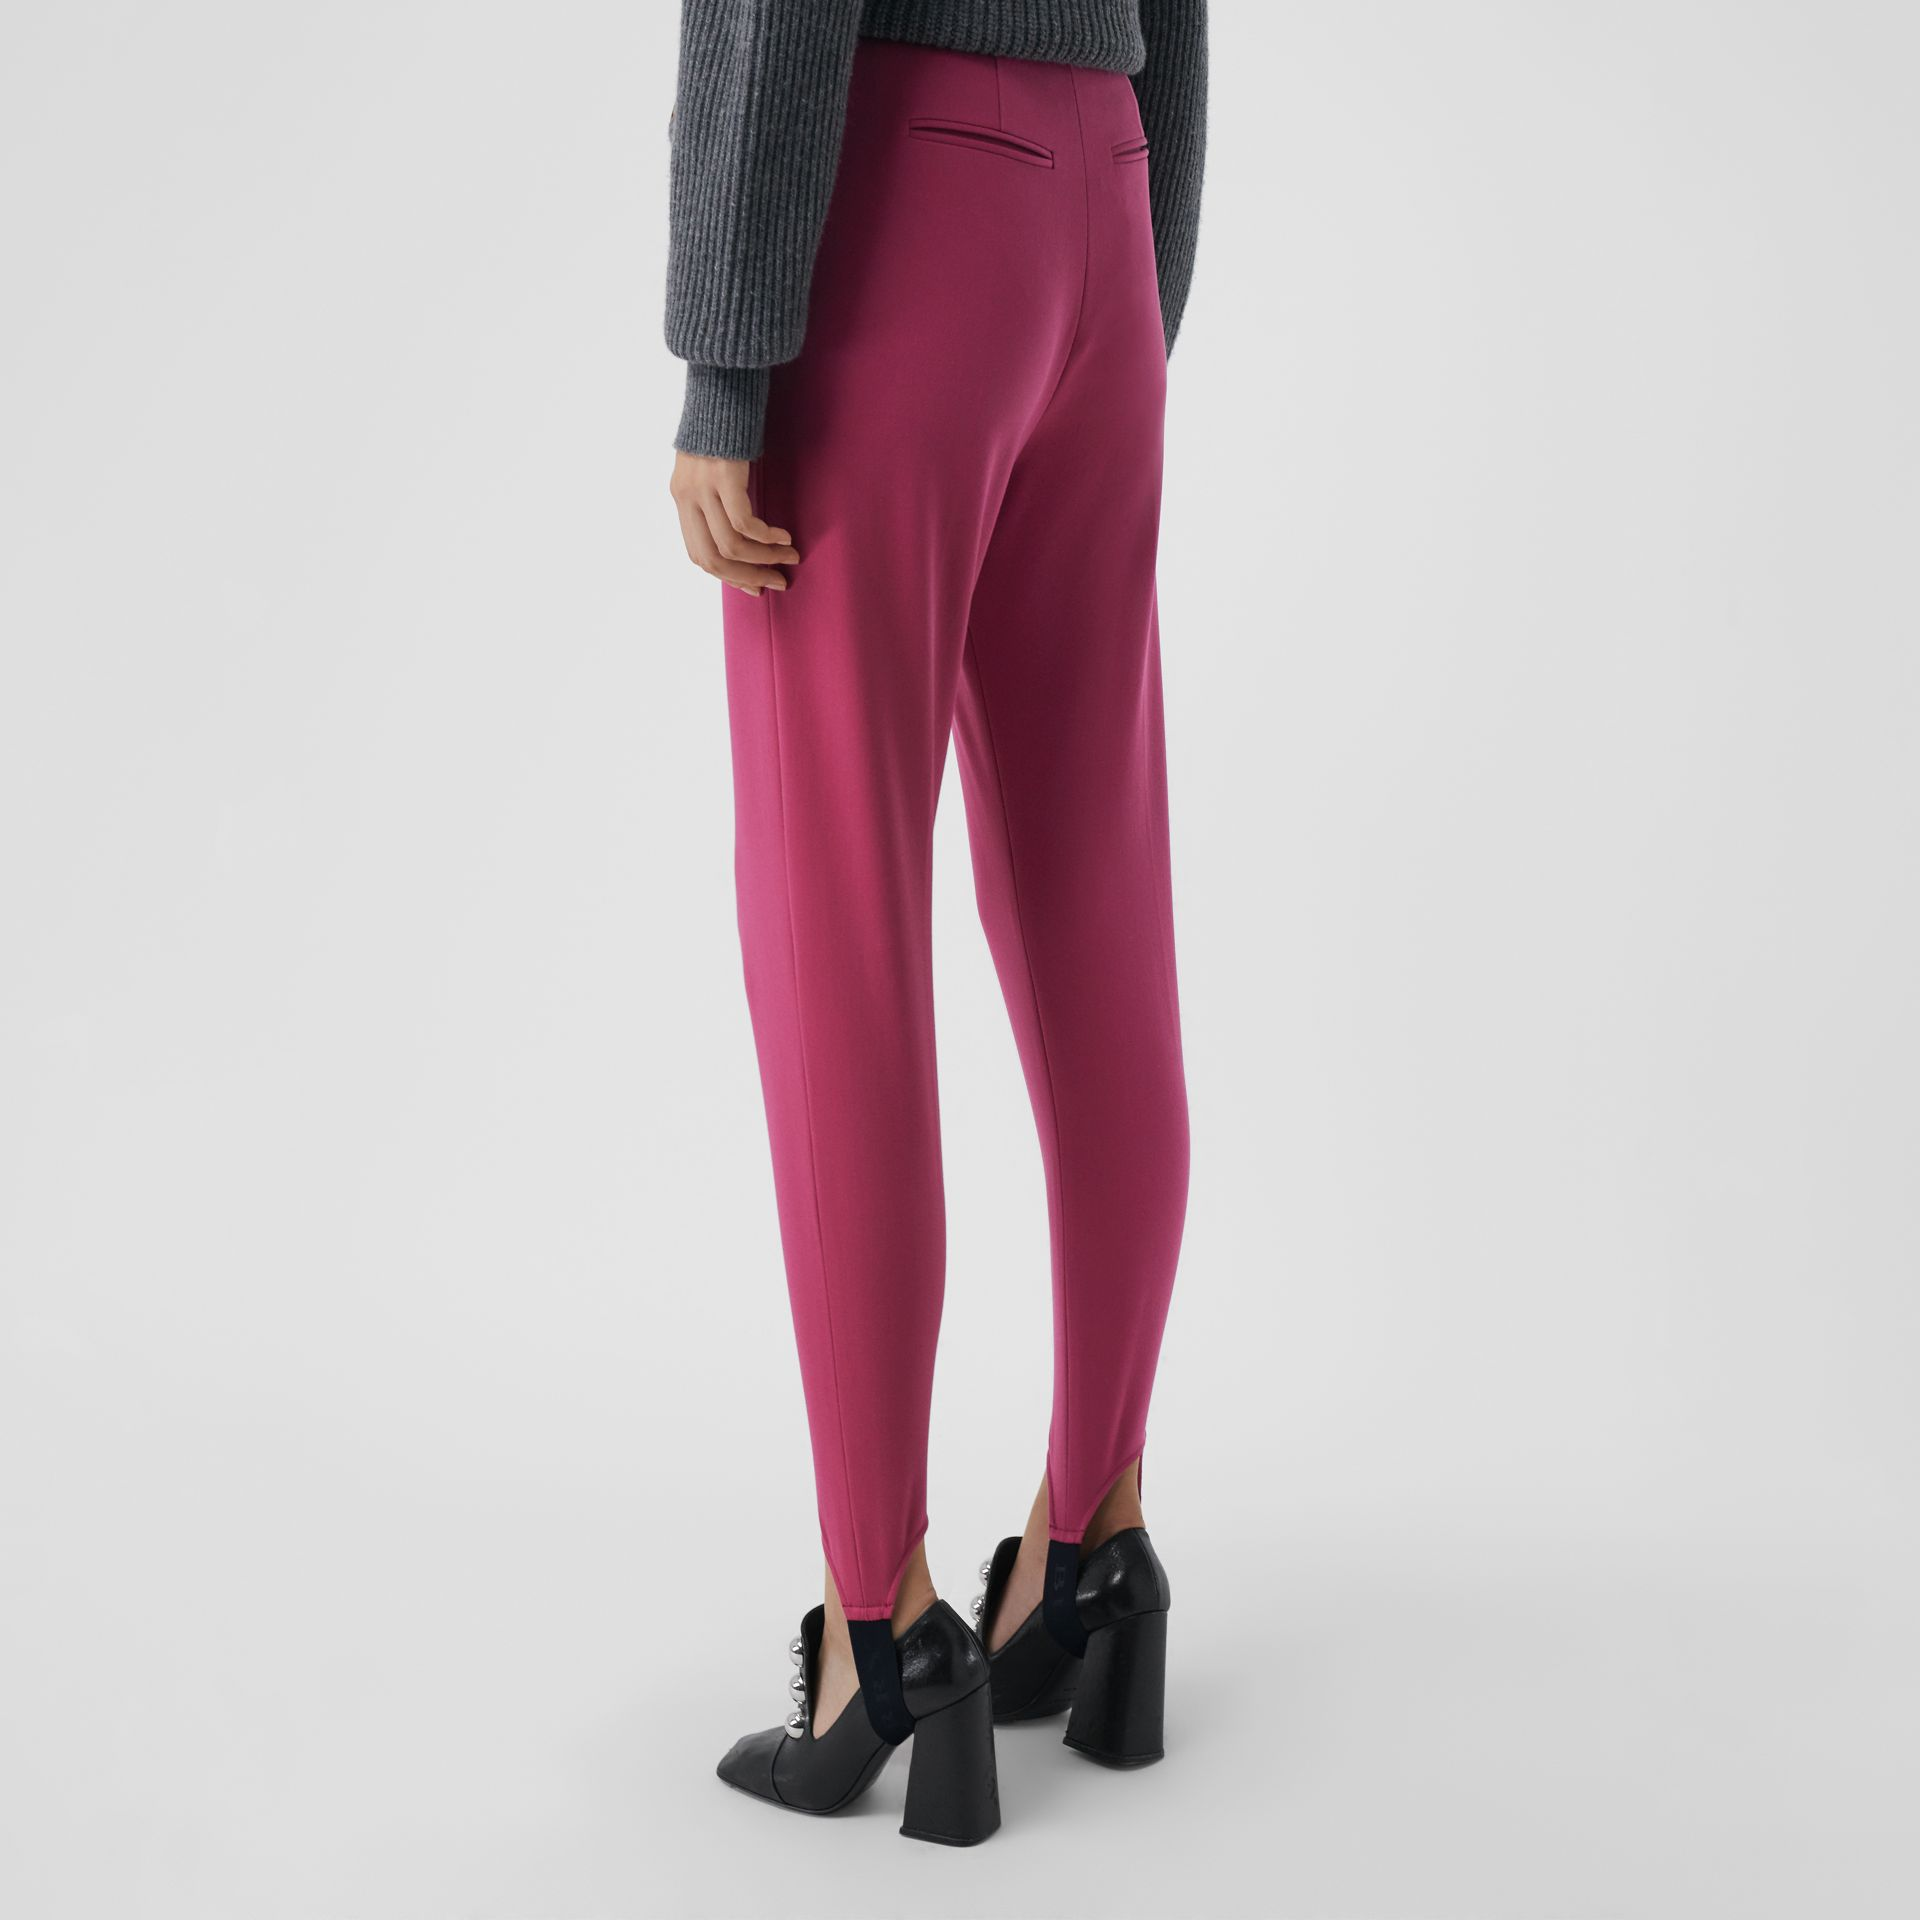 Cotton Blend Tailored Jodhpurs in Plum Pink - Women | Burberry United Kingdom - gallery image 2